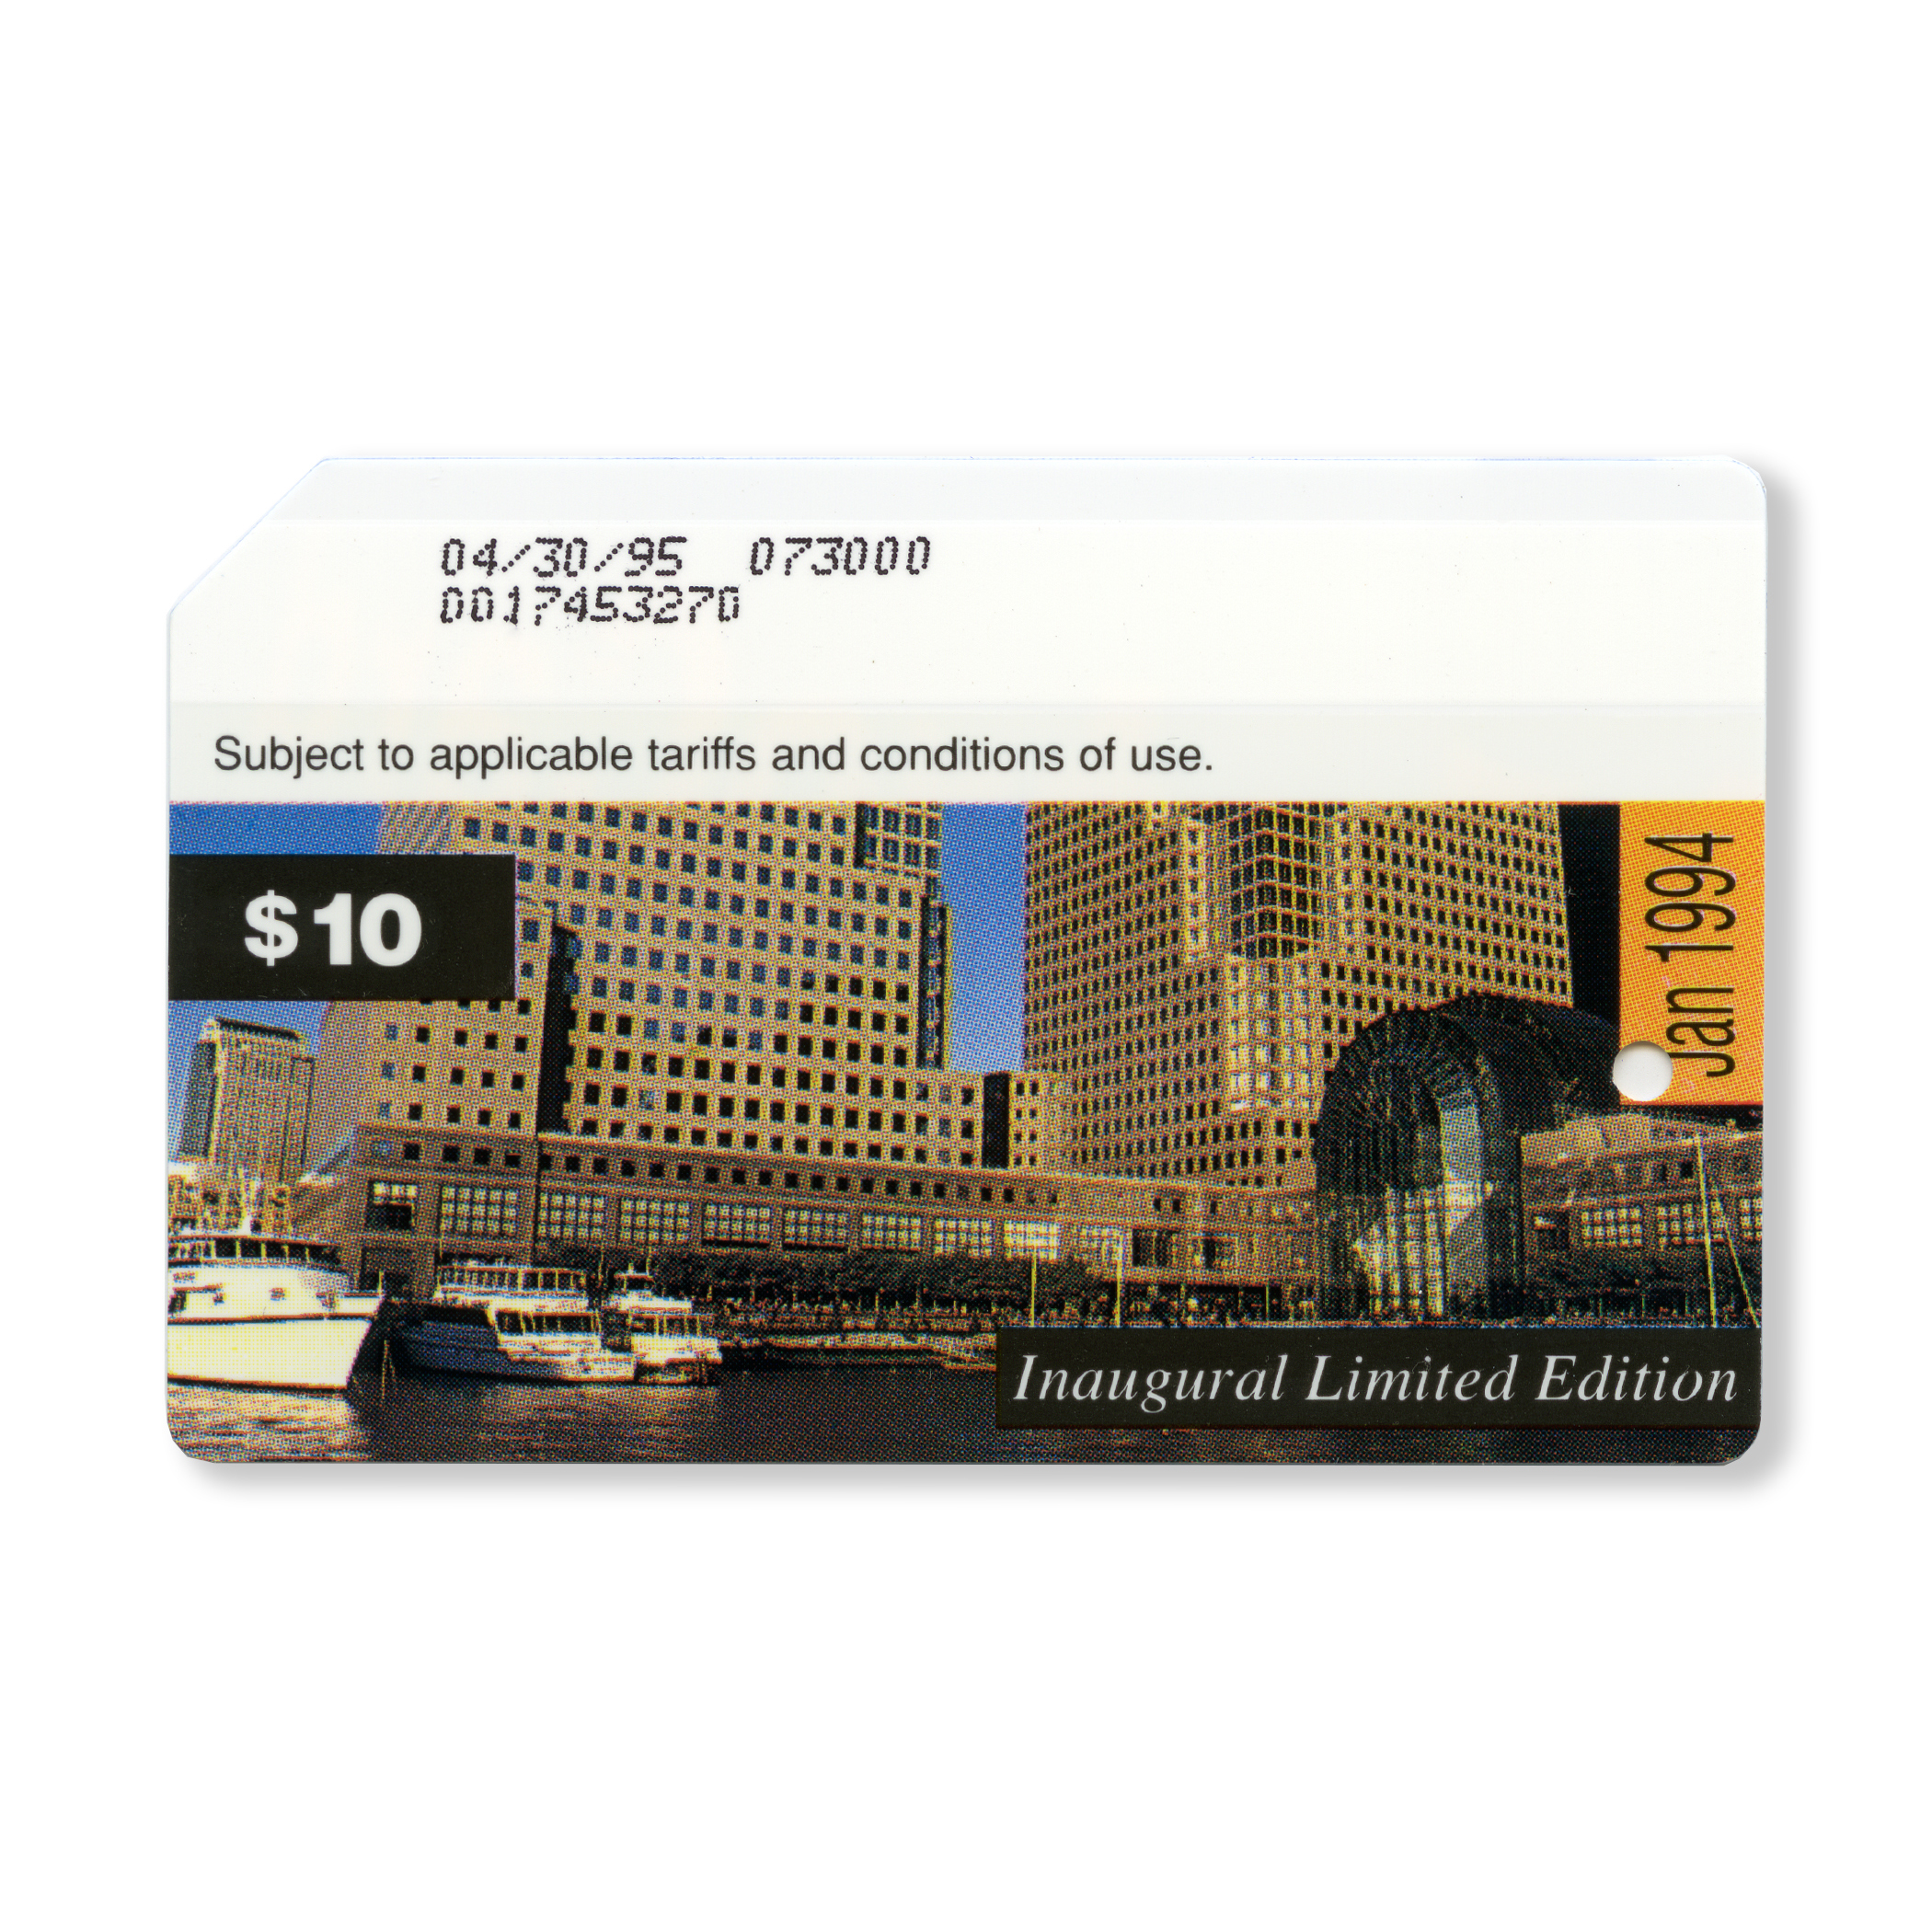 the_nycta_project_blue_metrocard_1994_inaugural_limited_edition_set_battery_park_citybrian_kelley.jpg